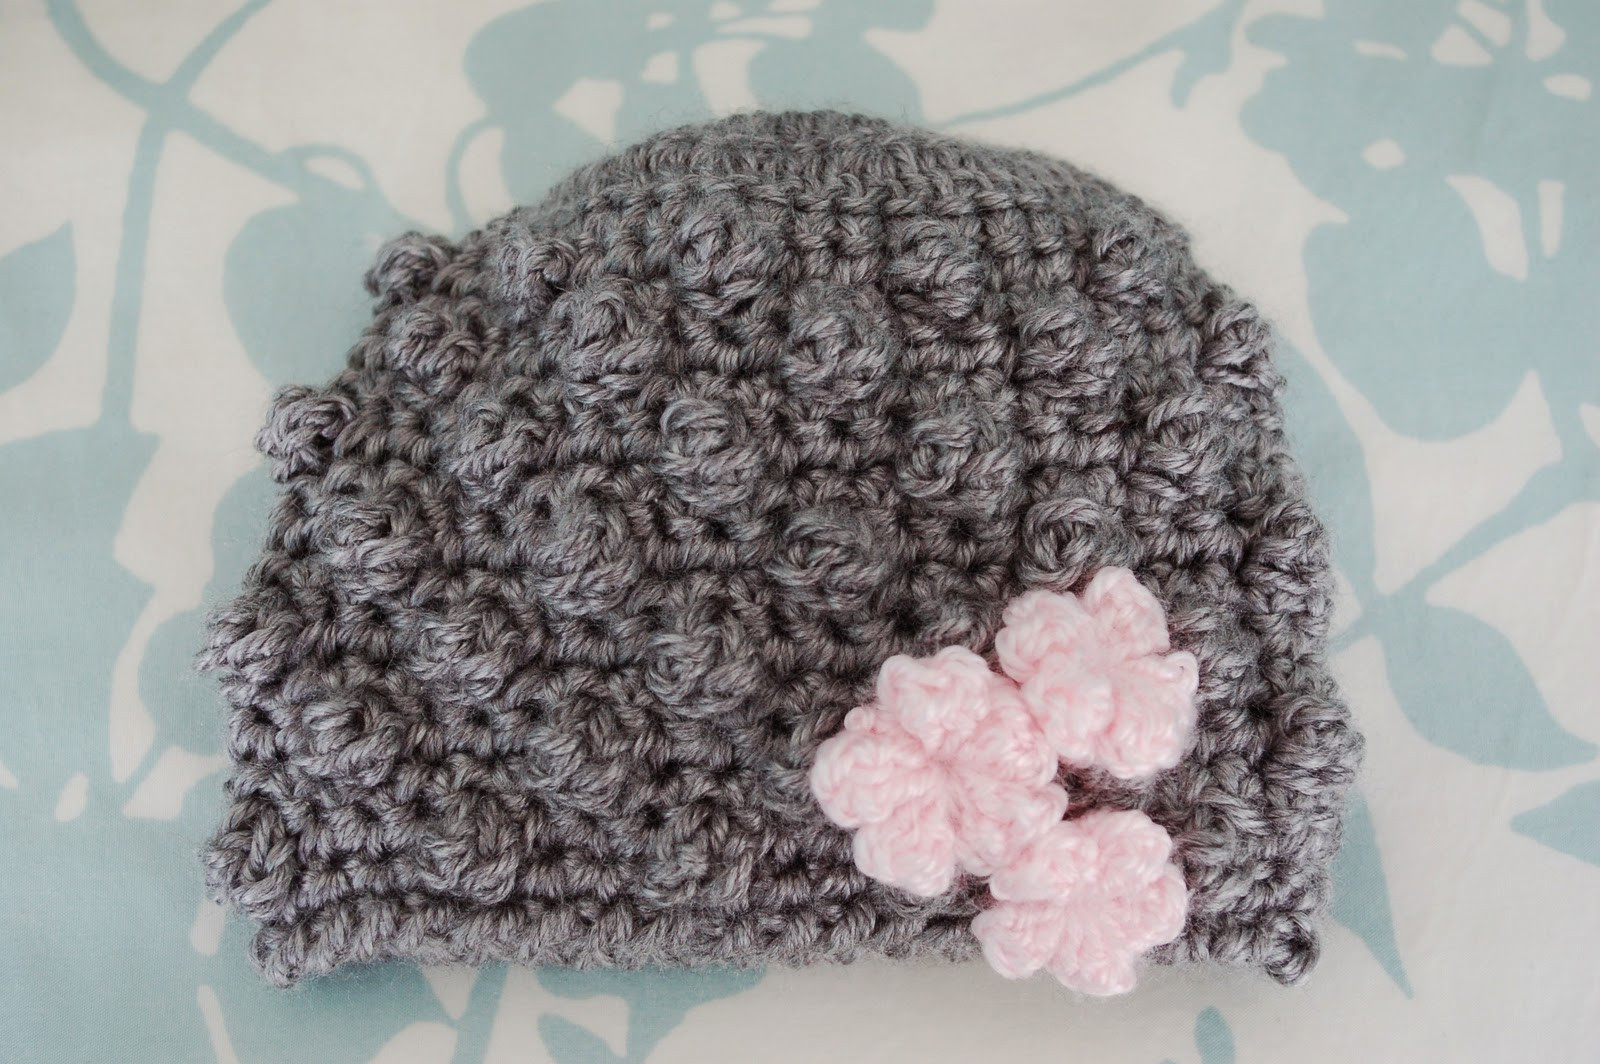 Luxury Alli Crafts Free Pattern Bobblicious Baby Hat Crochet toddler Hat Pattern Of Delightful 40 Ideas Crochet toddler Hat Pattern